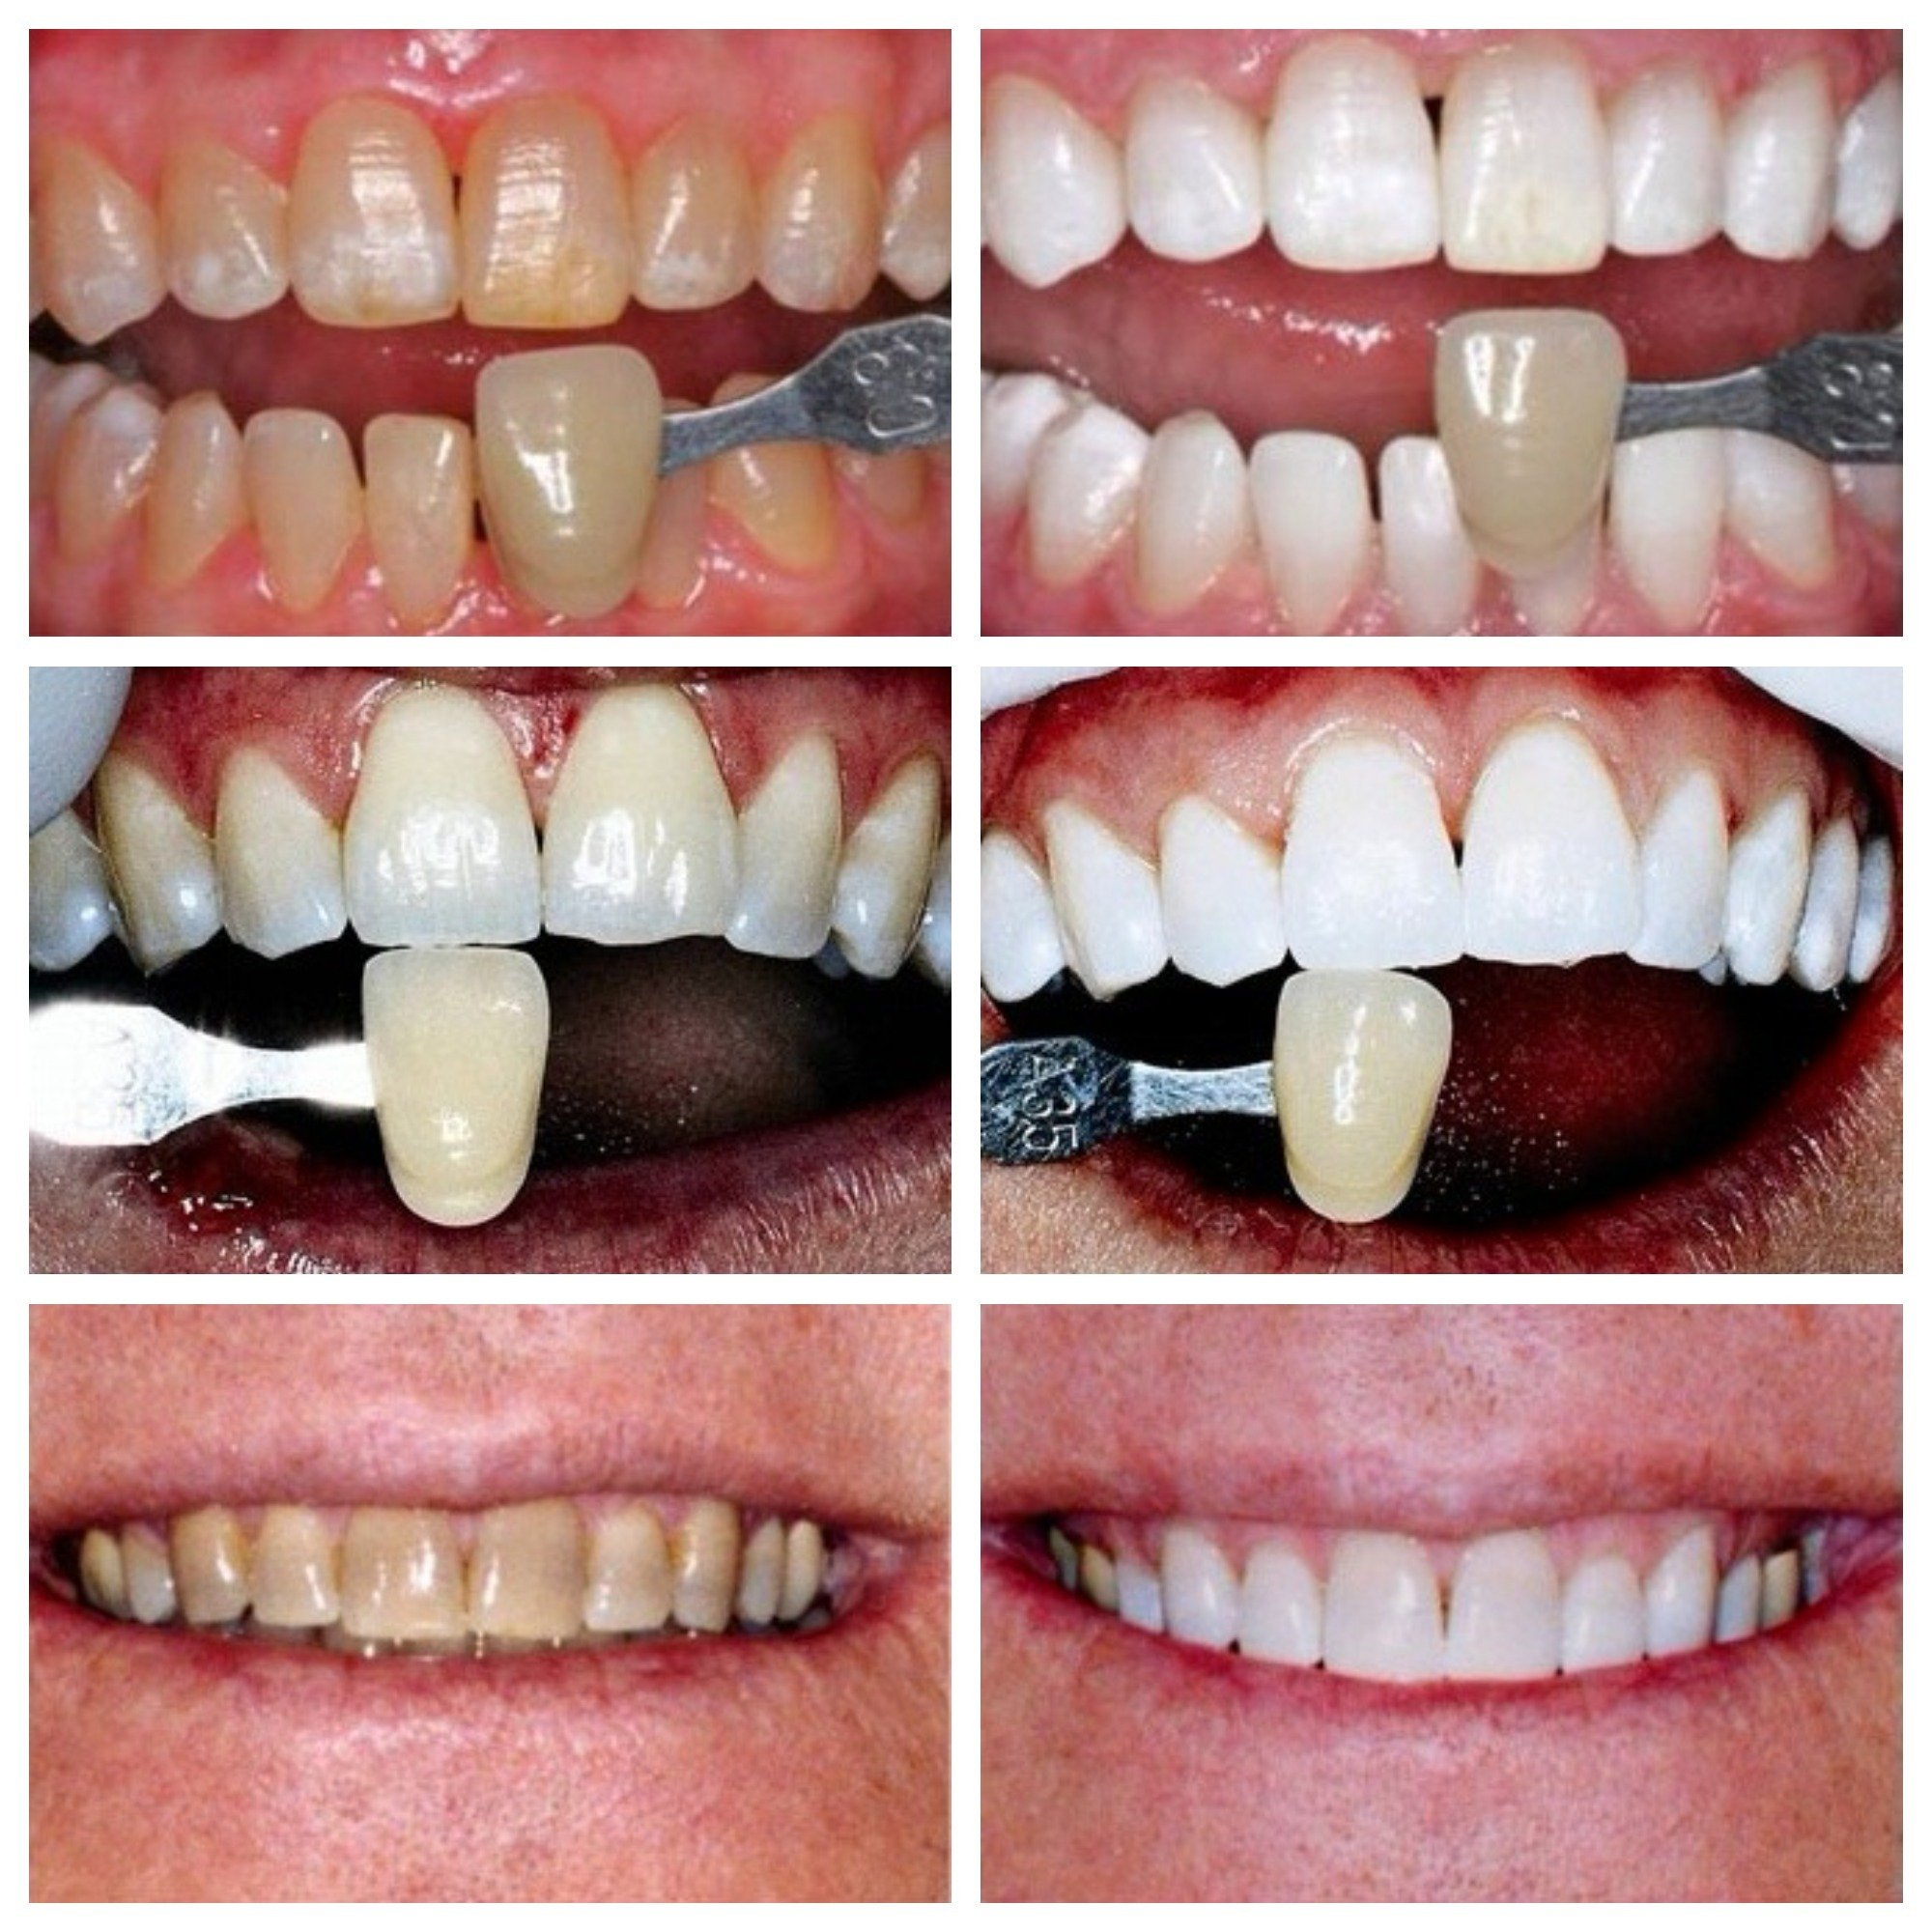 How To Use Smile Sciences Teeth Whitening Kit